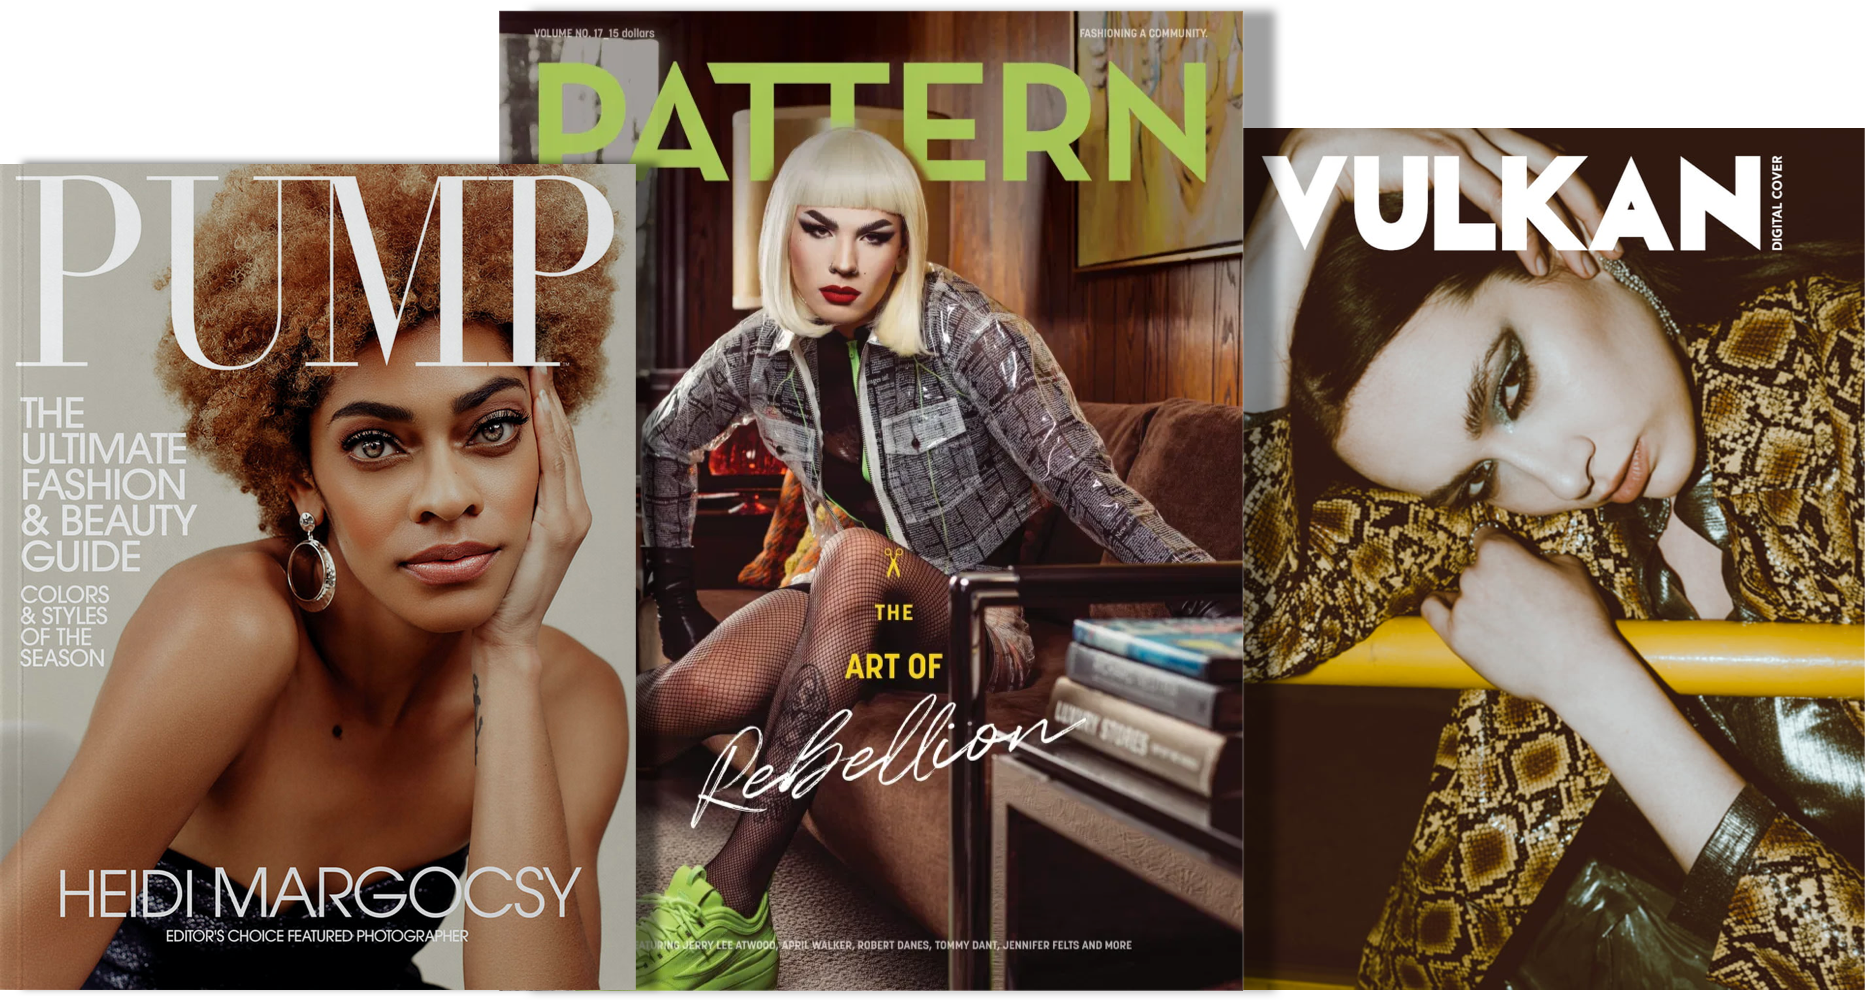 A group of assorted magazine covers.